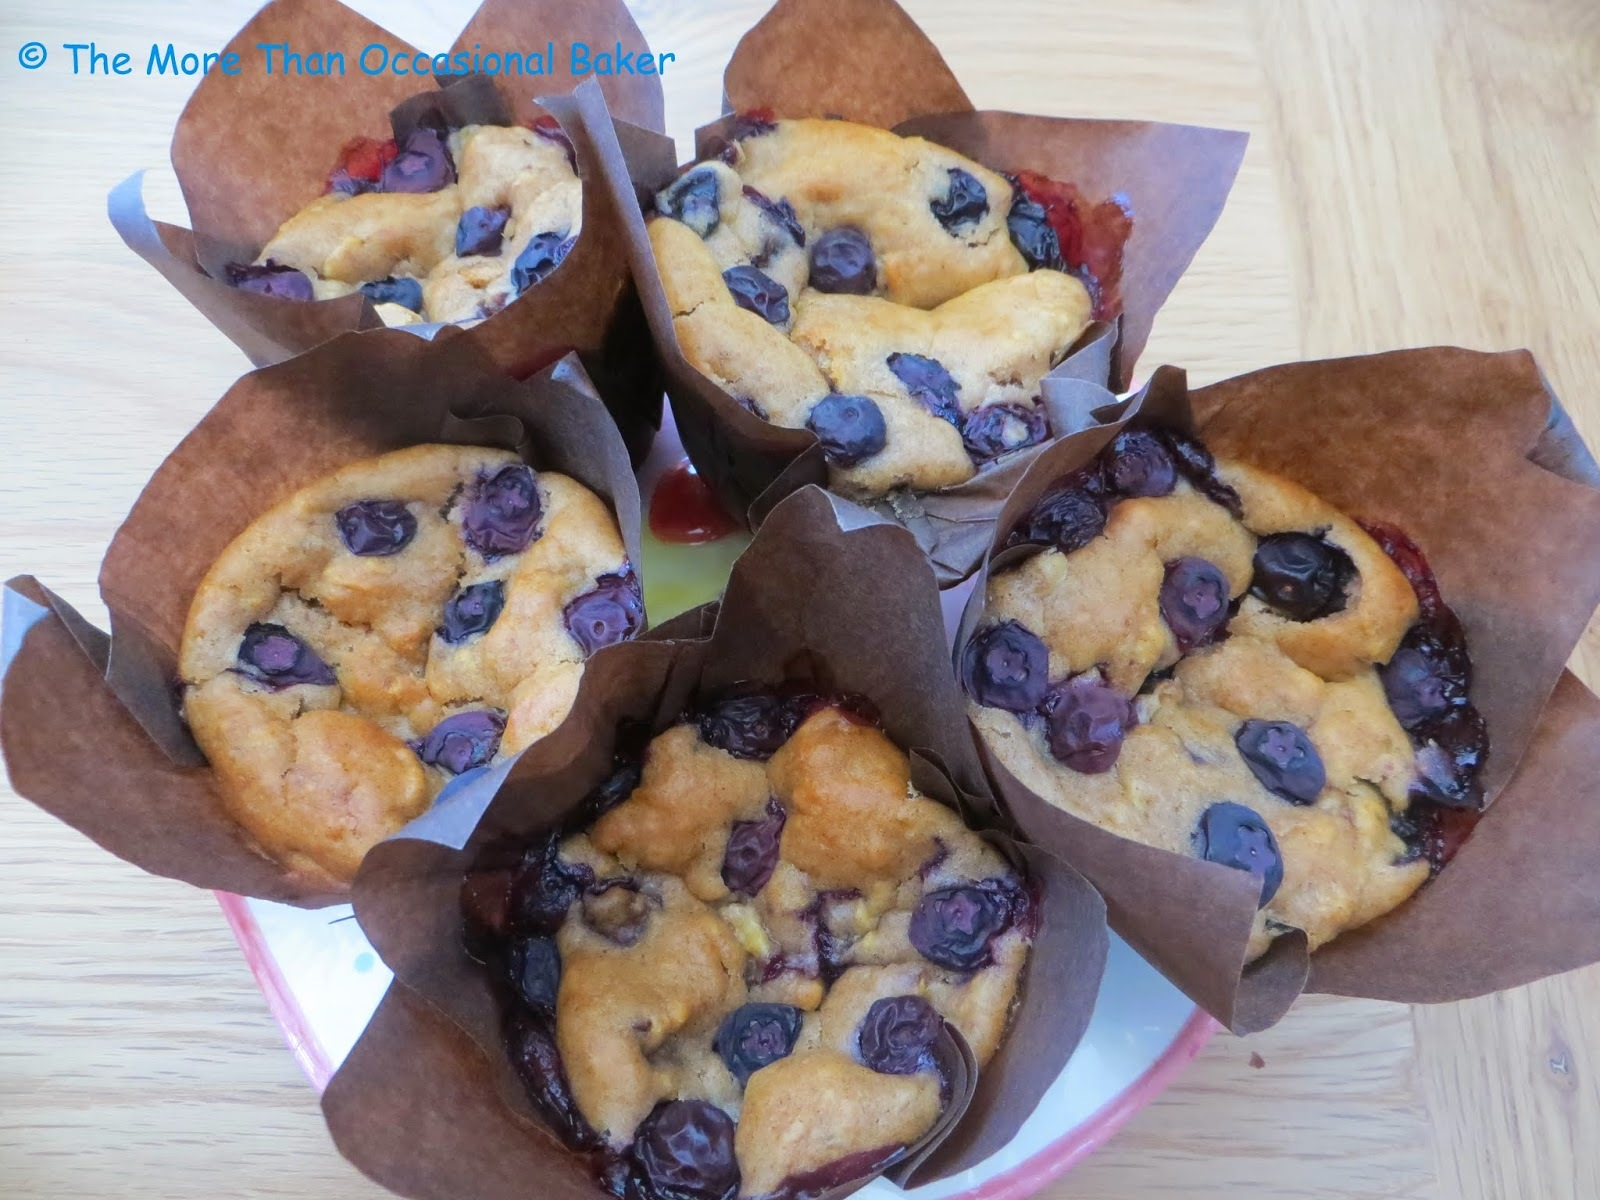 Banana, blueberry and apple muffins